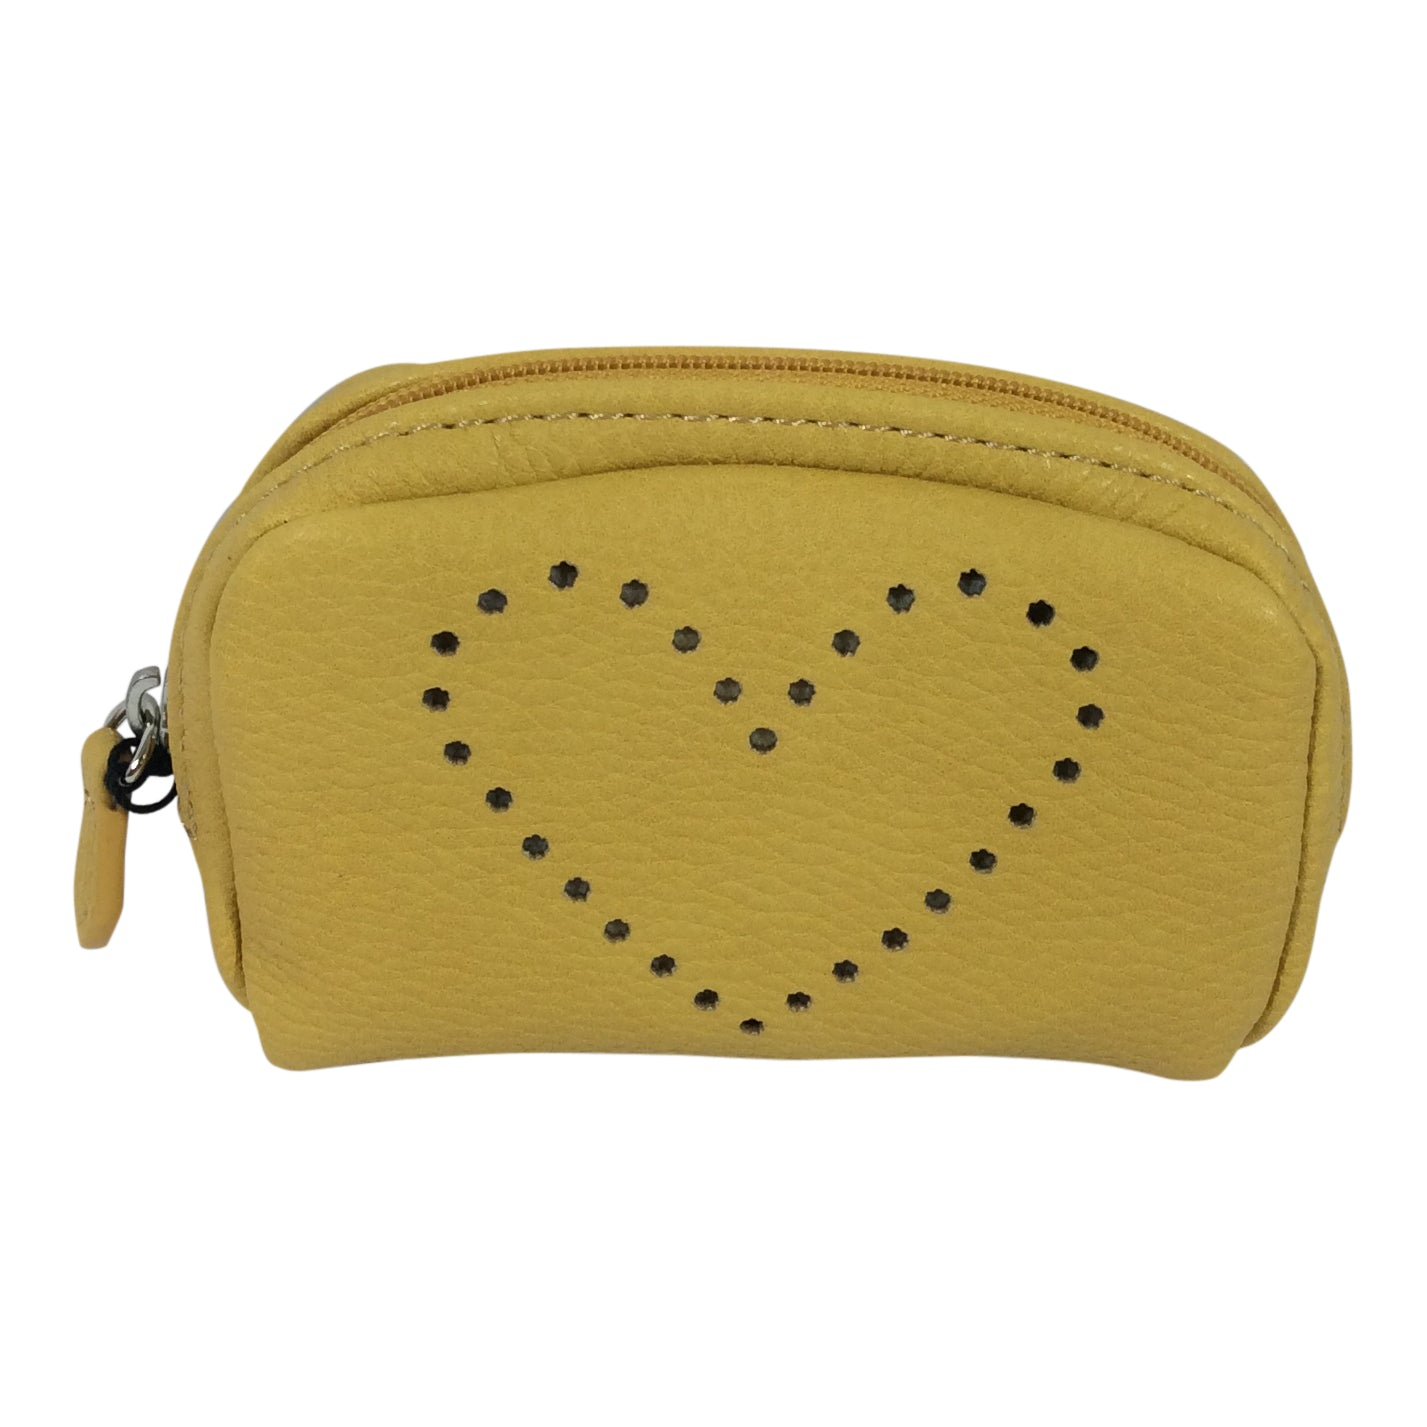 Cosgrove & Beasley - Coiny - Coin Purse - Mustard - Sole Sister Shoes